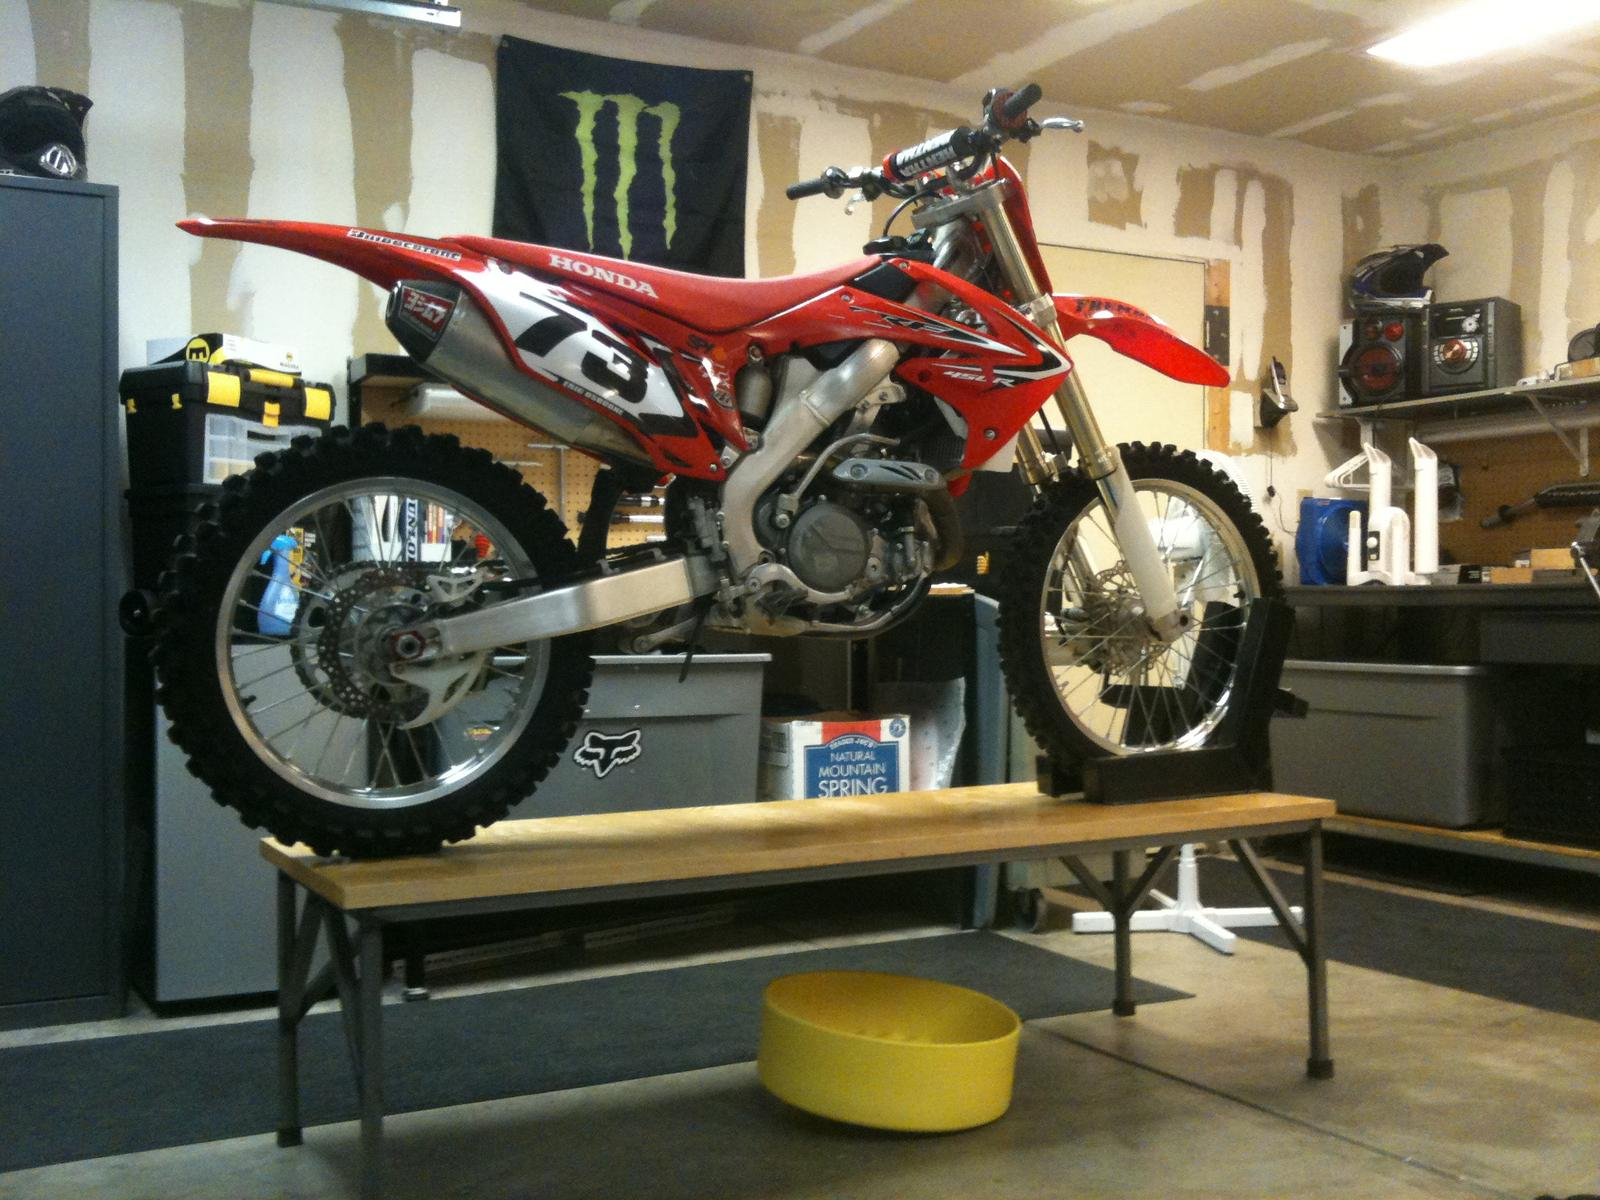 Share your motorcycle work bench pictures here | South Bay ...